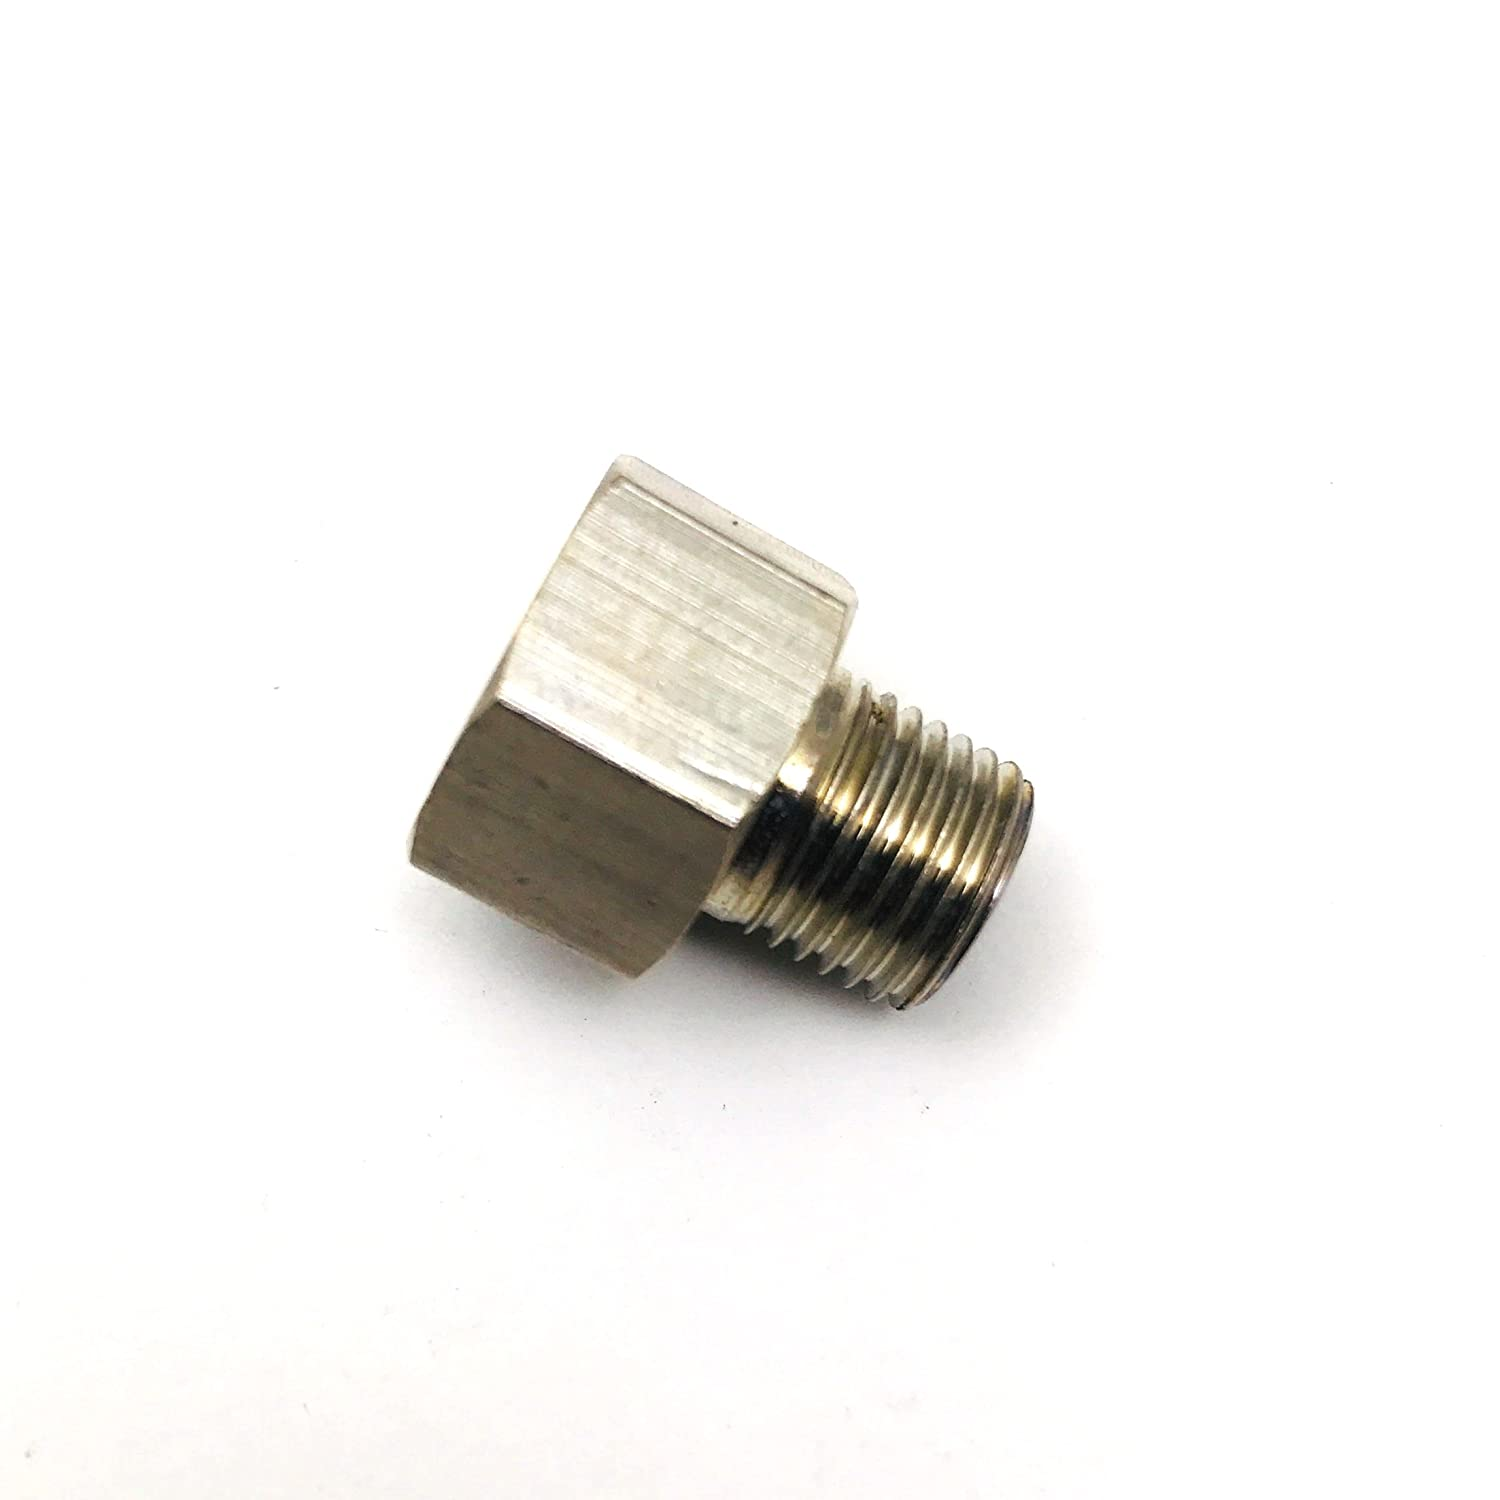 1 4 Npt >> Pipe 1 4 Npt Female To M10 M10x1 Male Metric Adapter Fitting Fuel